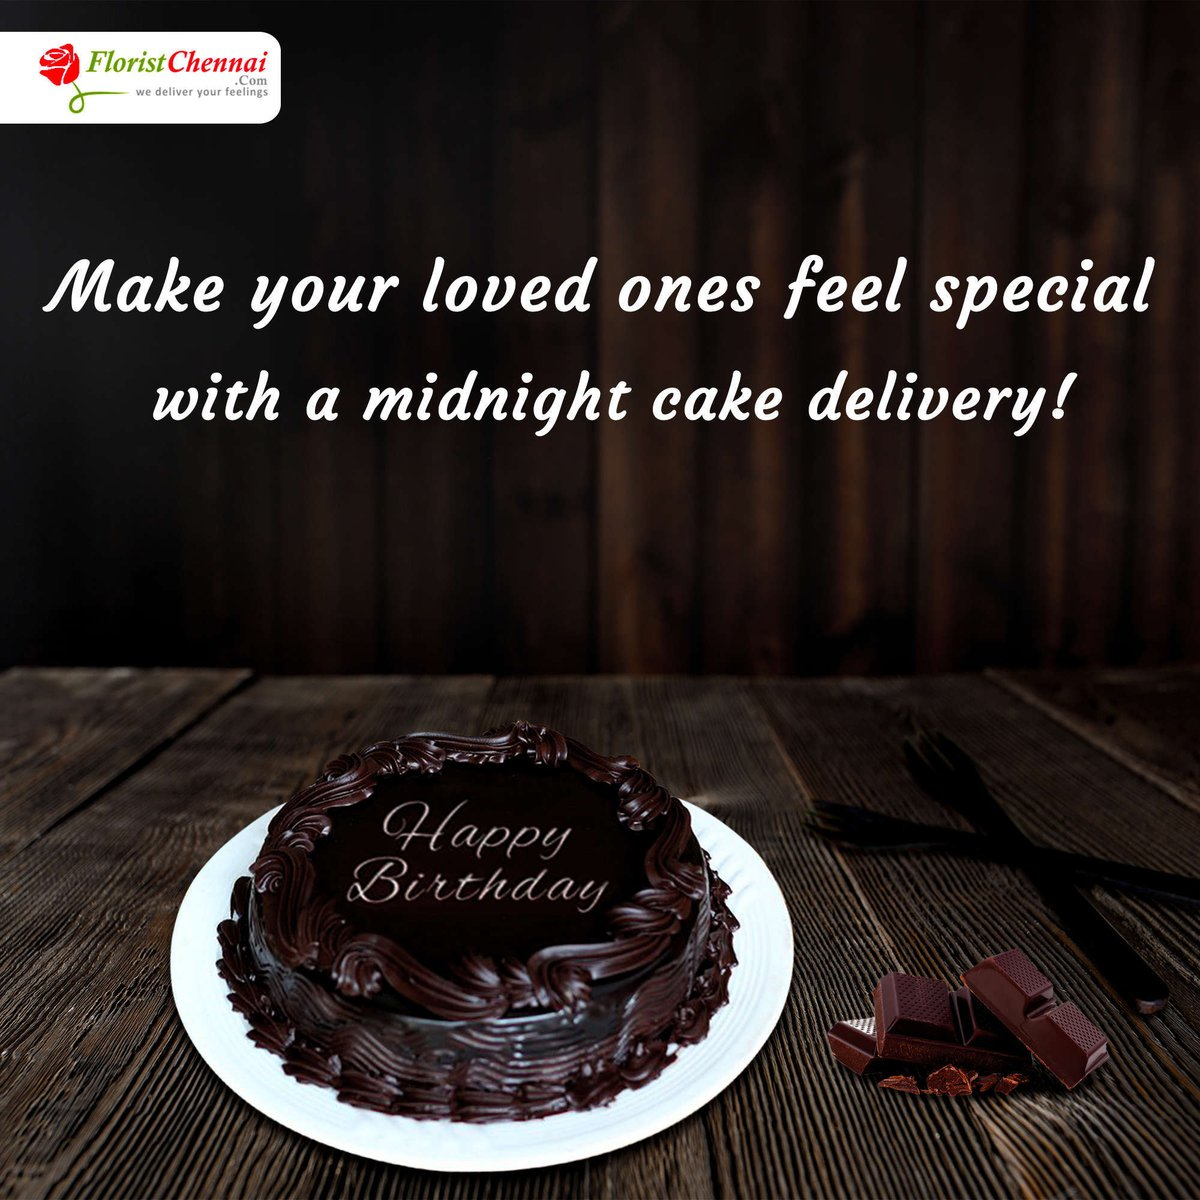 Your Dear Ones Birthday Ampgs 7v4a Chennai Surprise With A Cake Delivered At Midnight Visit Us 7v4X